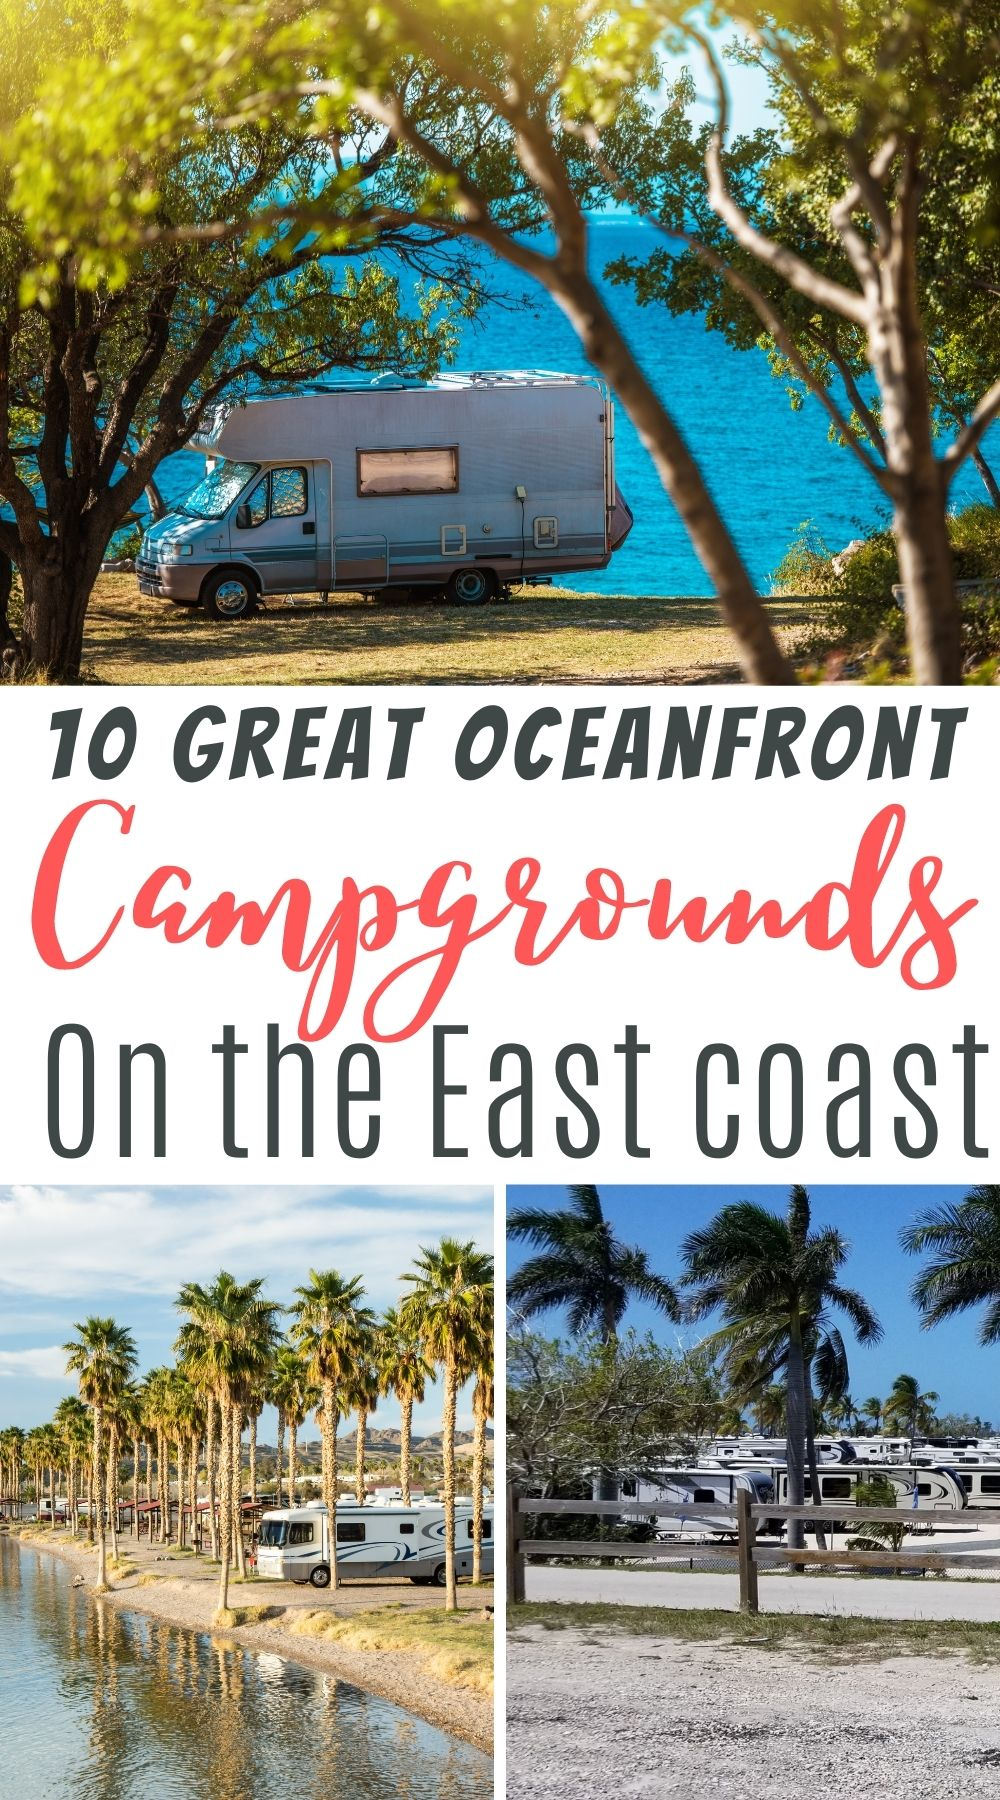 oceanfront campgrounds